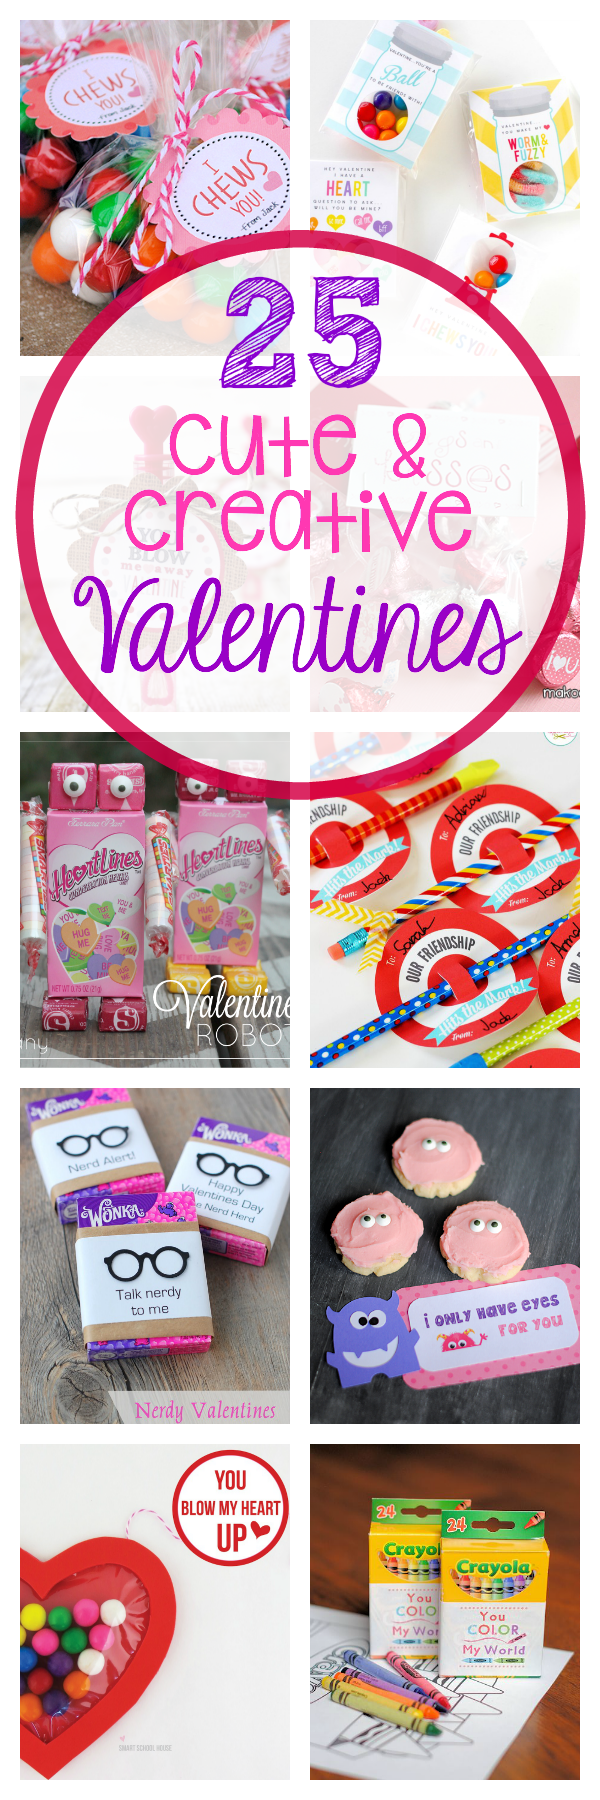 25 of the Cutest Valentine's Day Printable Cards for the kids to give out in class. Super cute ideas that are easy to put together and fun to give. #valentinesday #valentinesdayideas